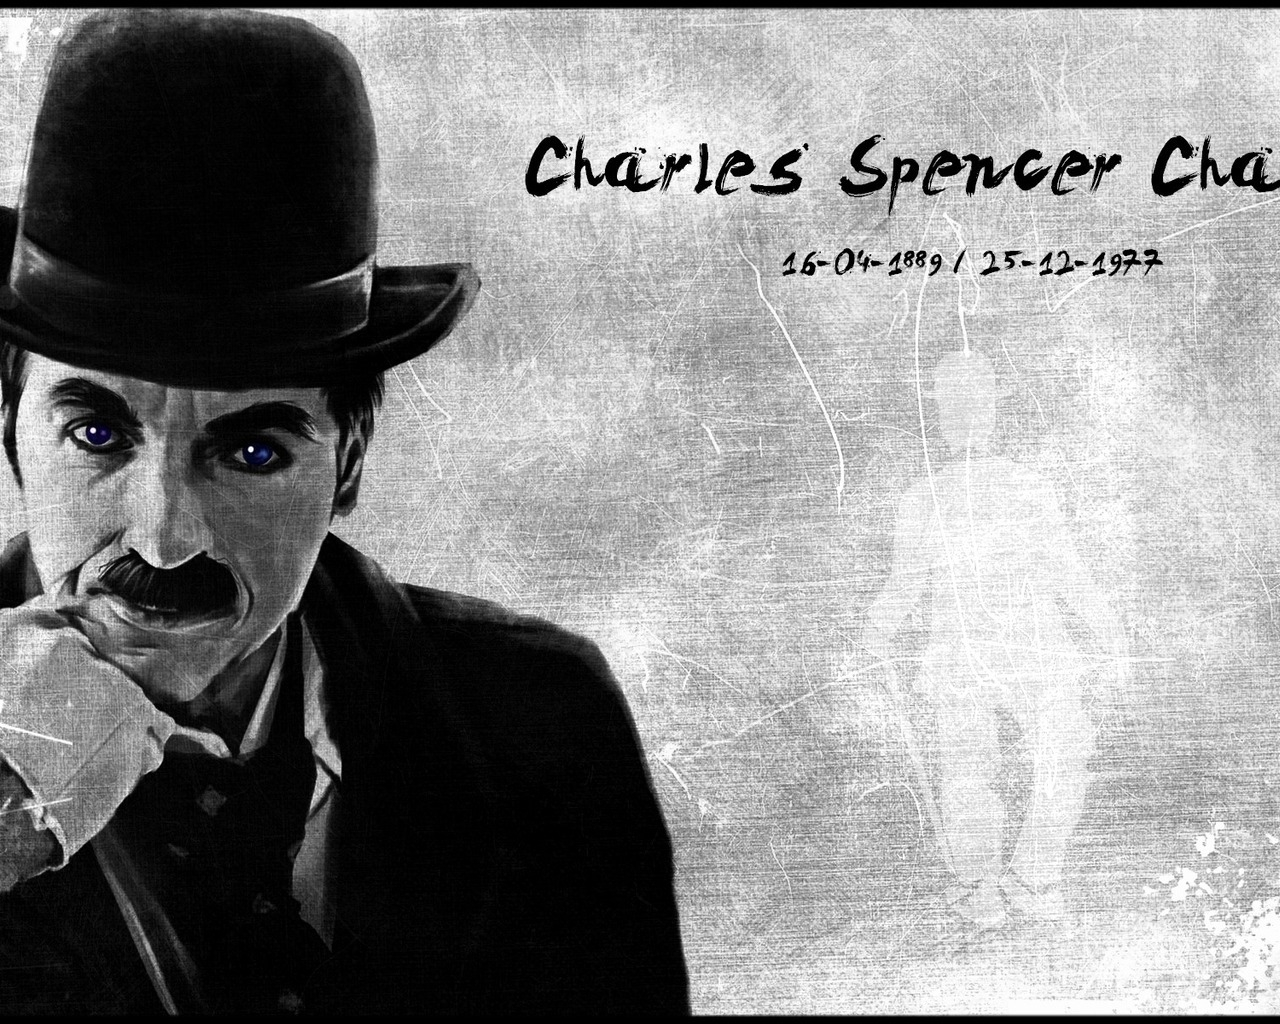 Charles Chaplin for 1280 x 1024 resolution